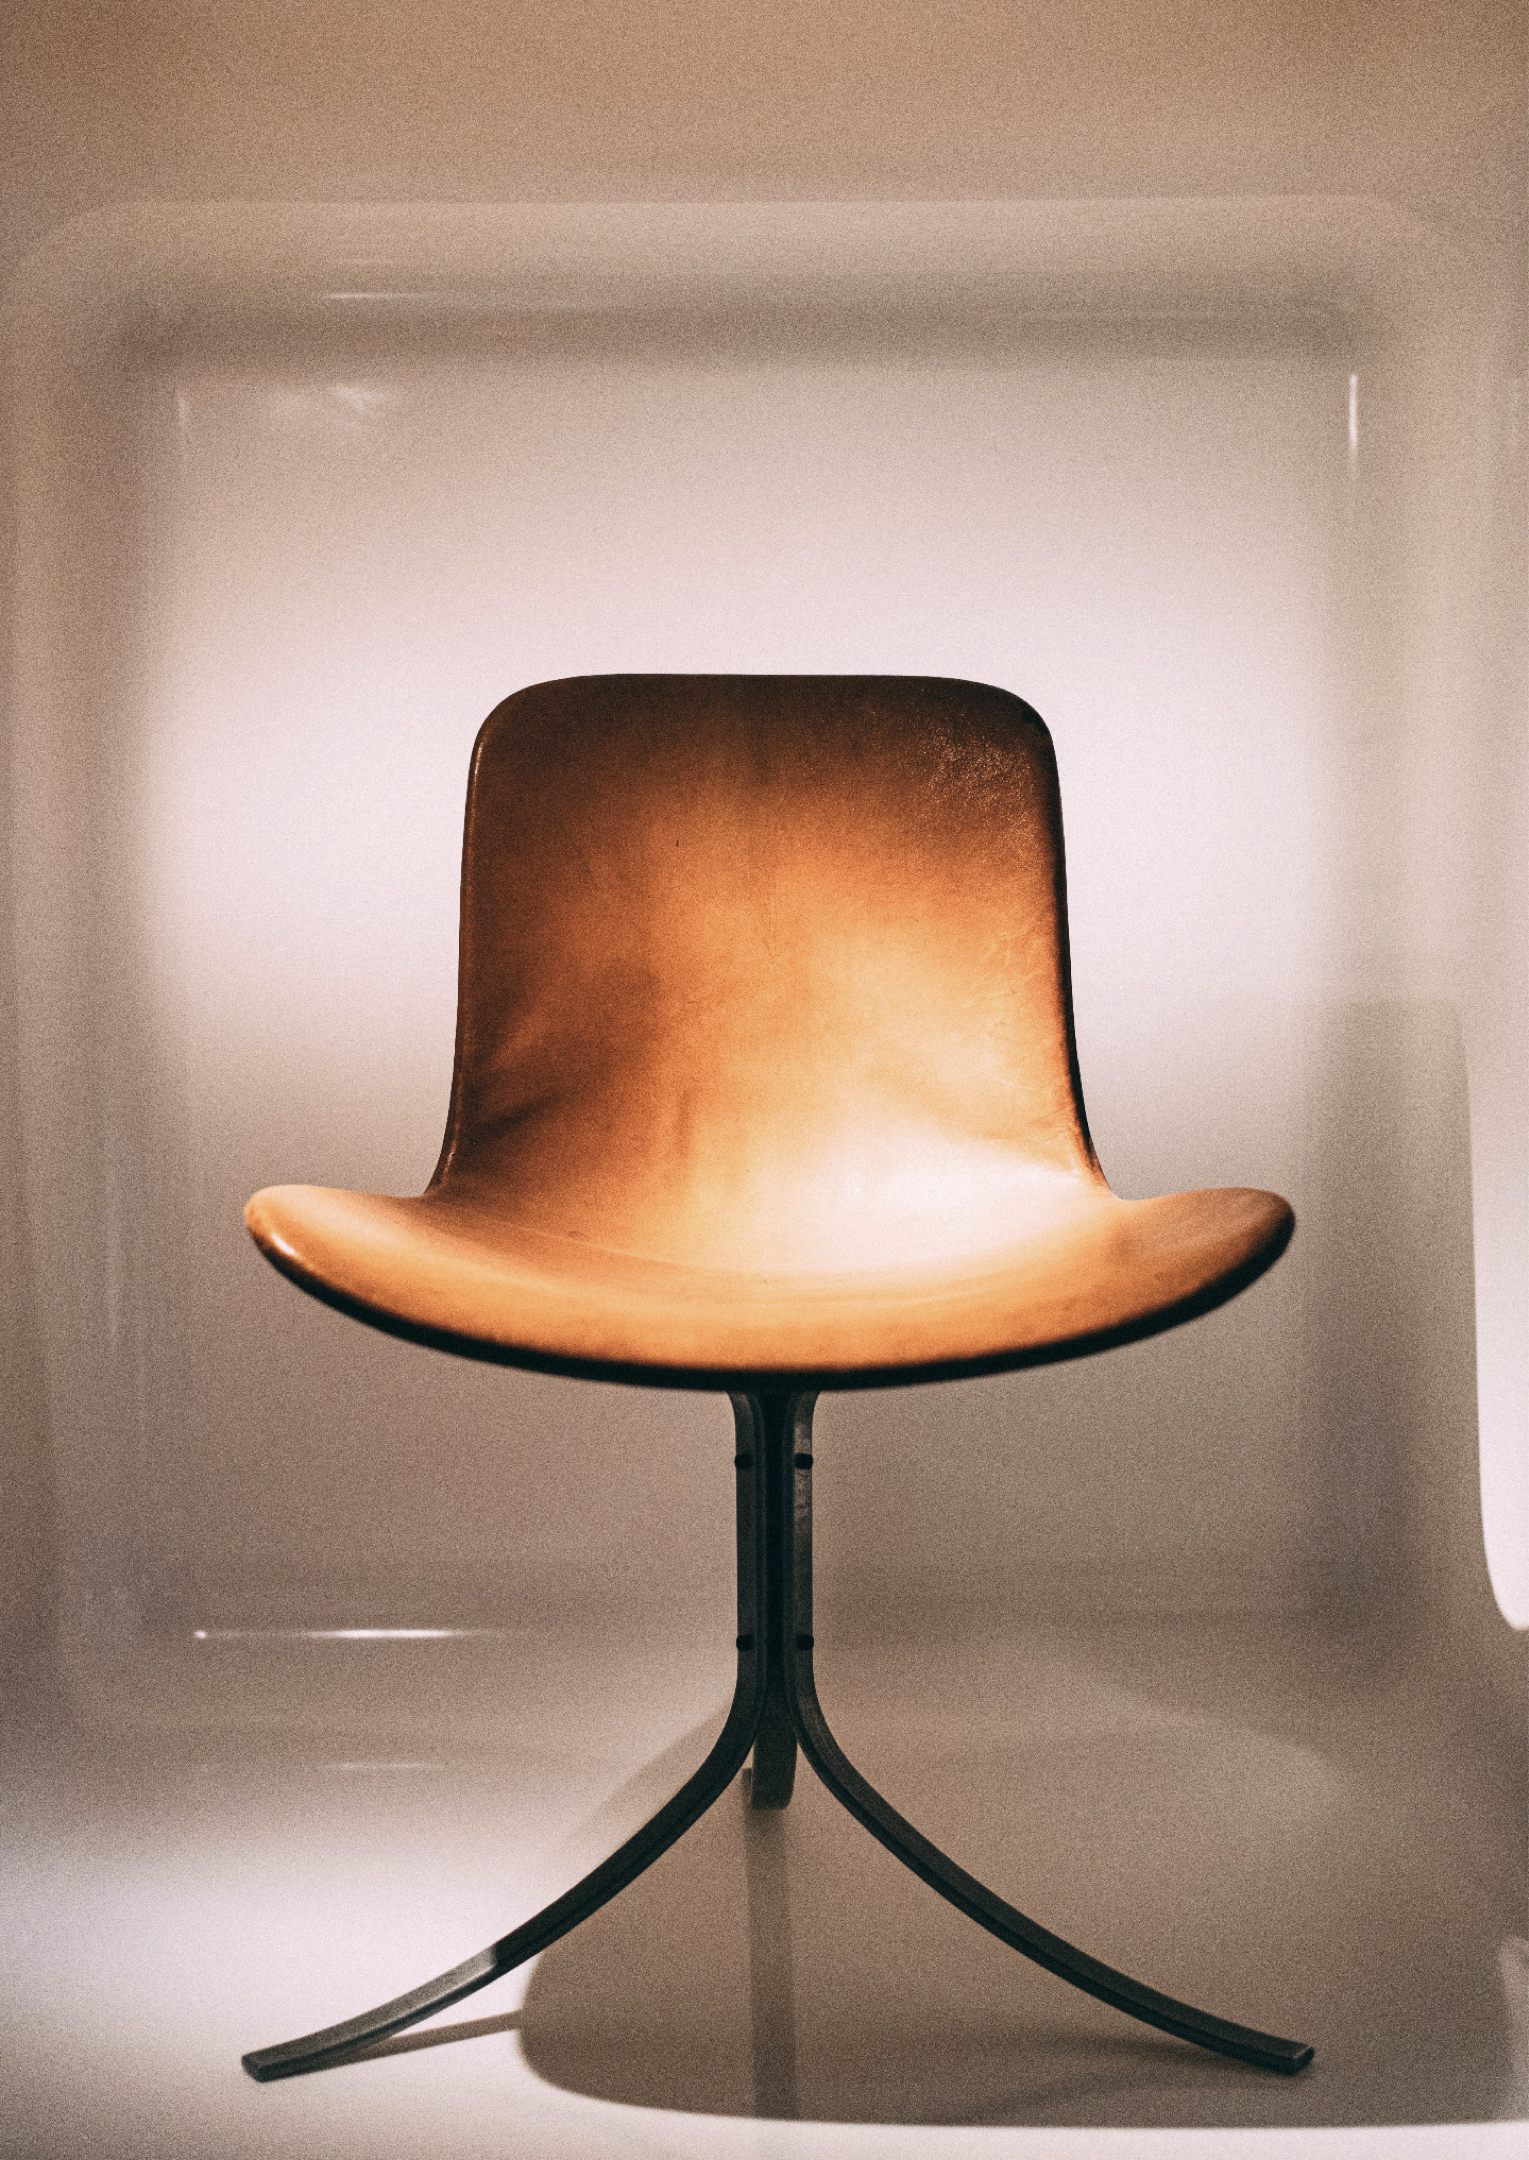 A brown leather black chair with a seamless back facing directly at the camera, with three curved black legs.